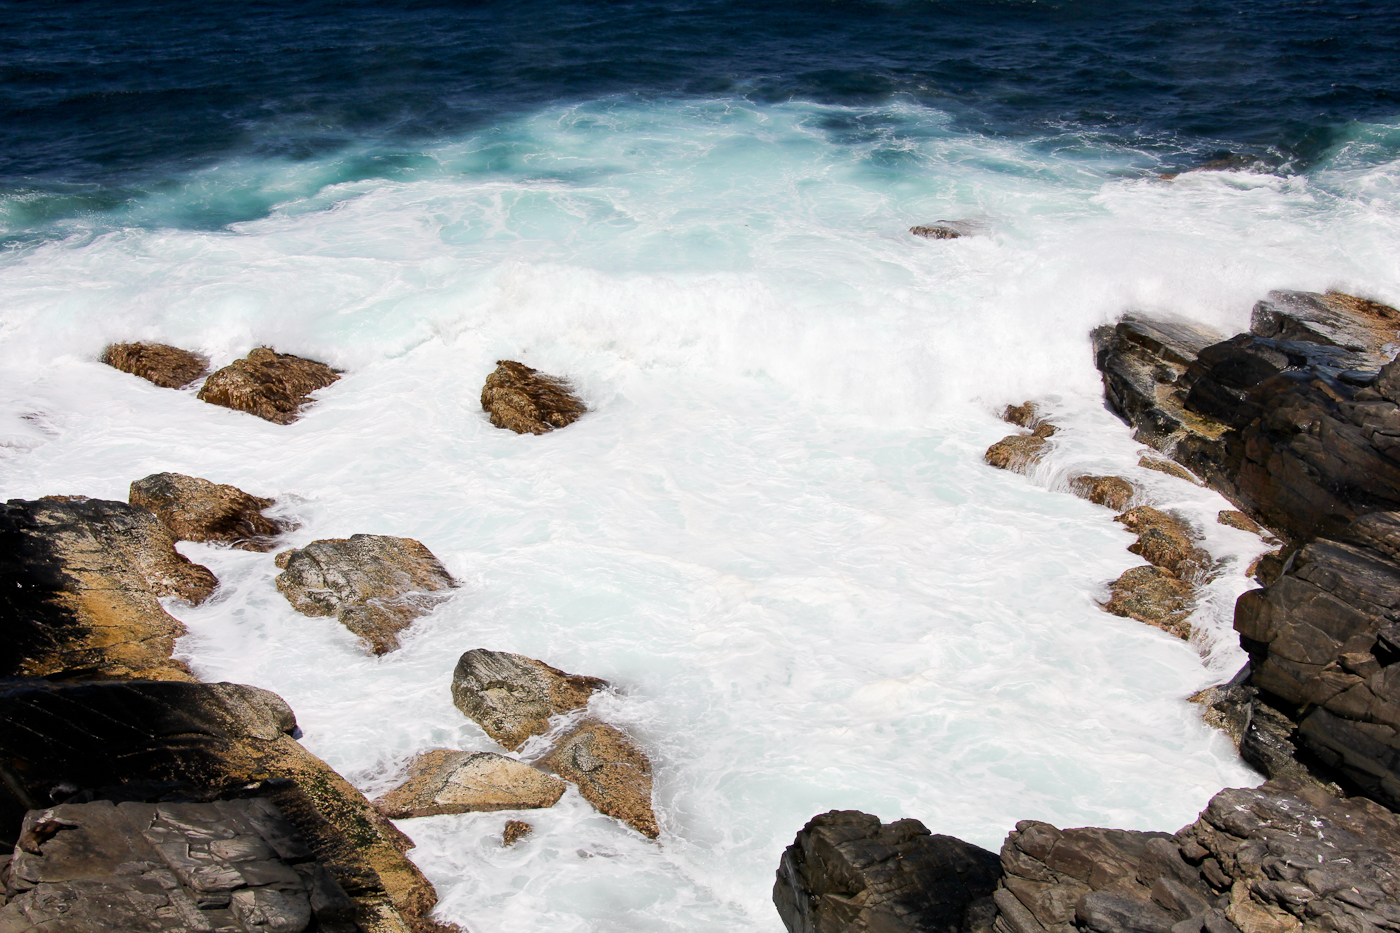 The fierce waters surrounding Kangaroo Island